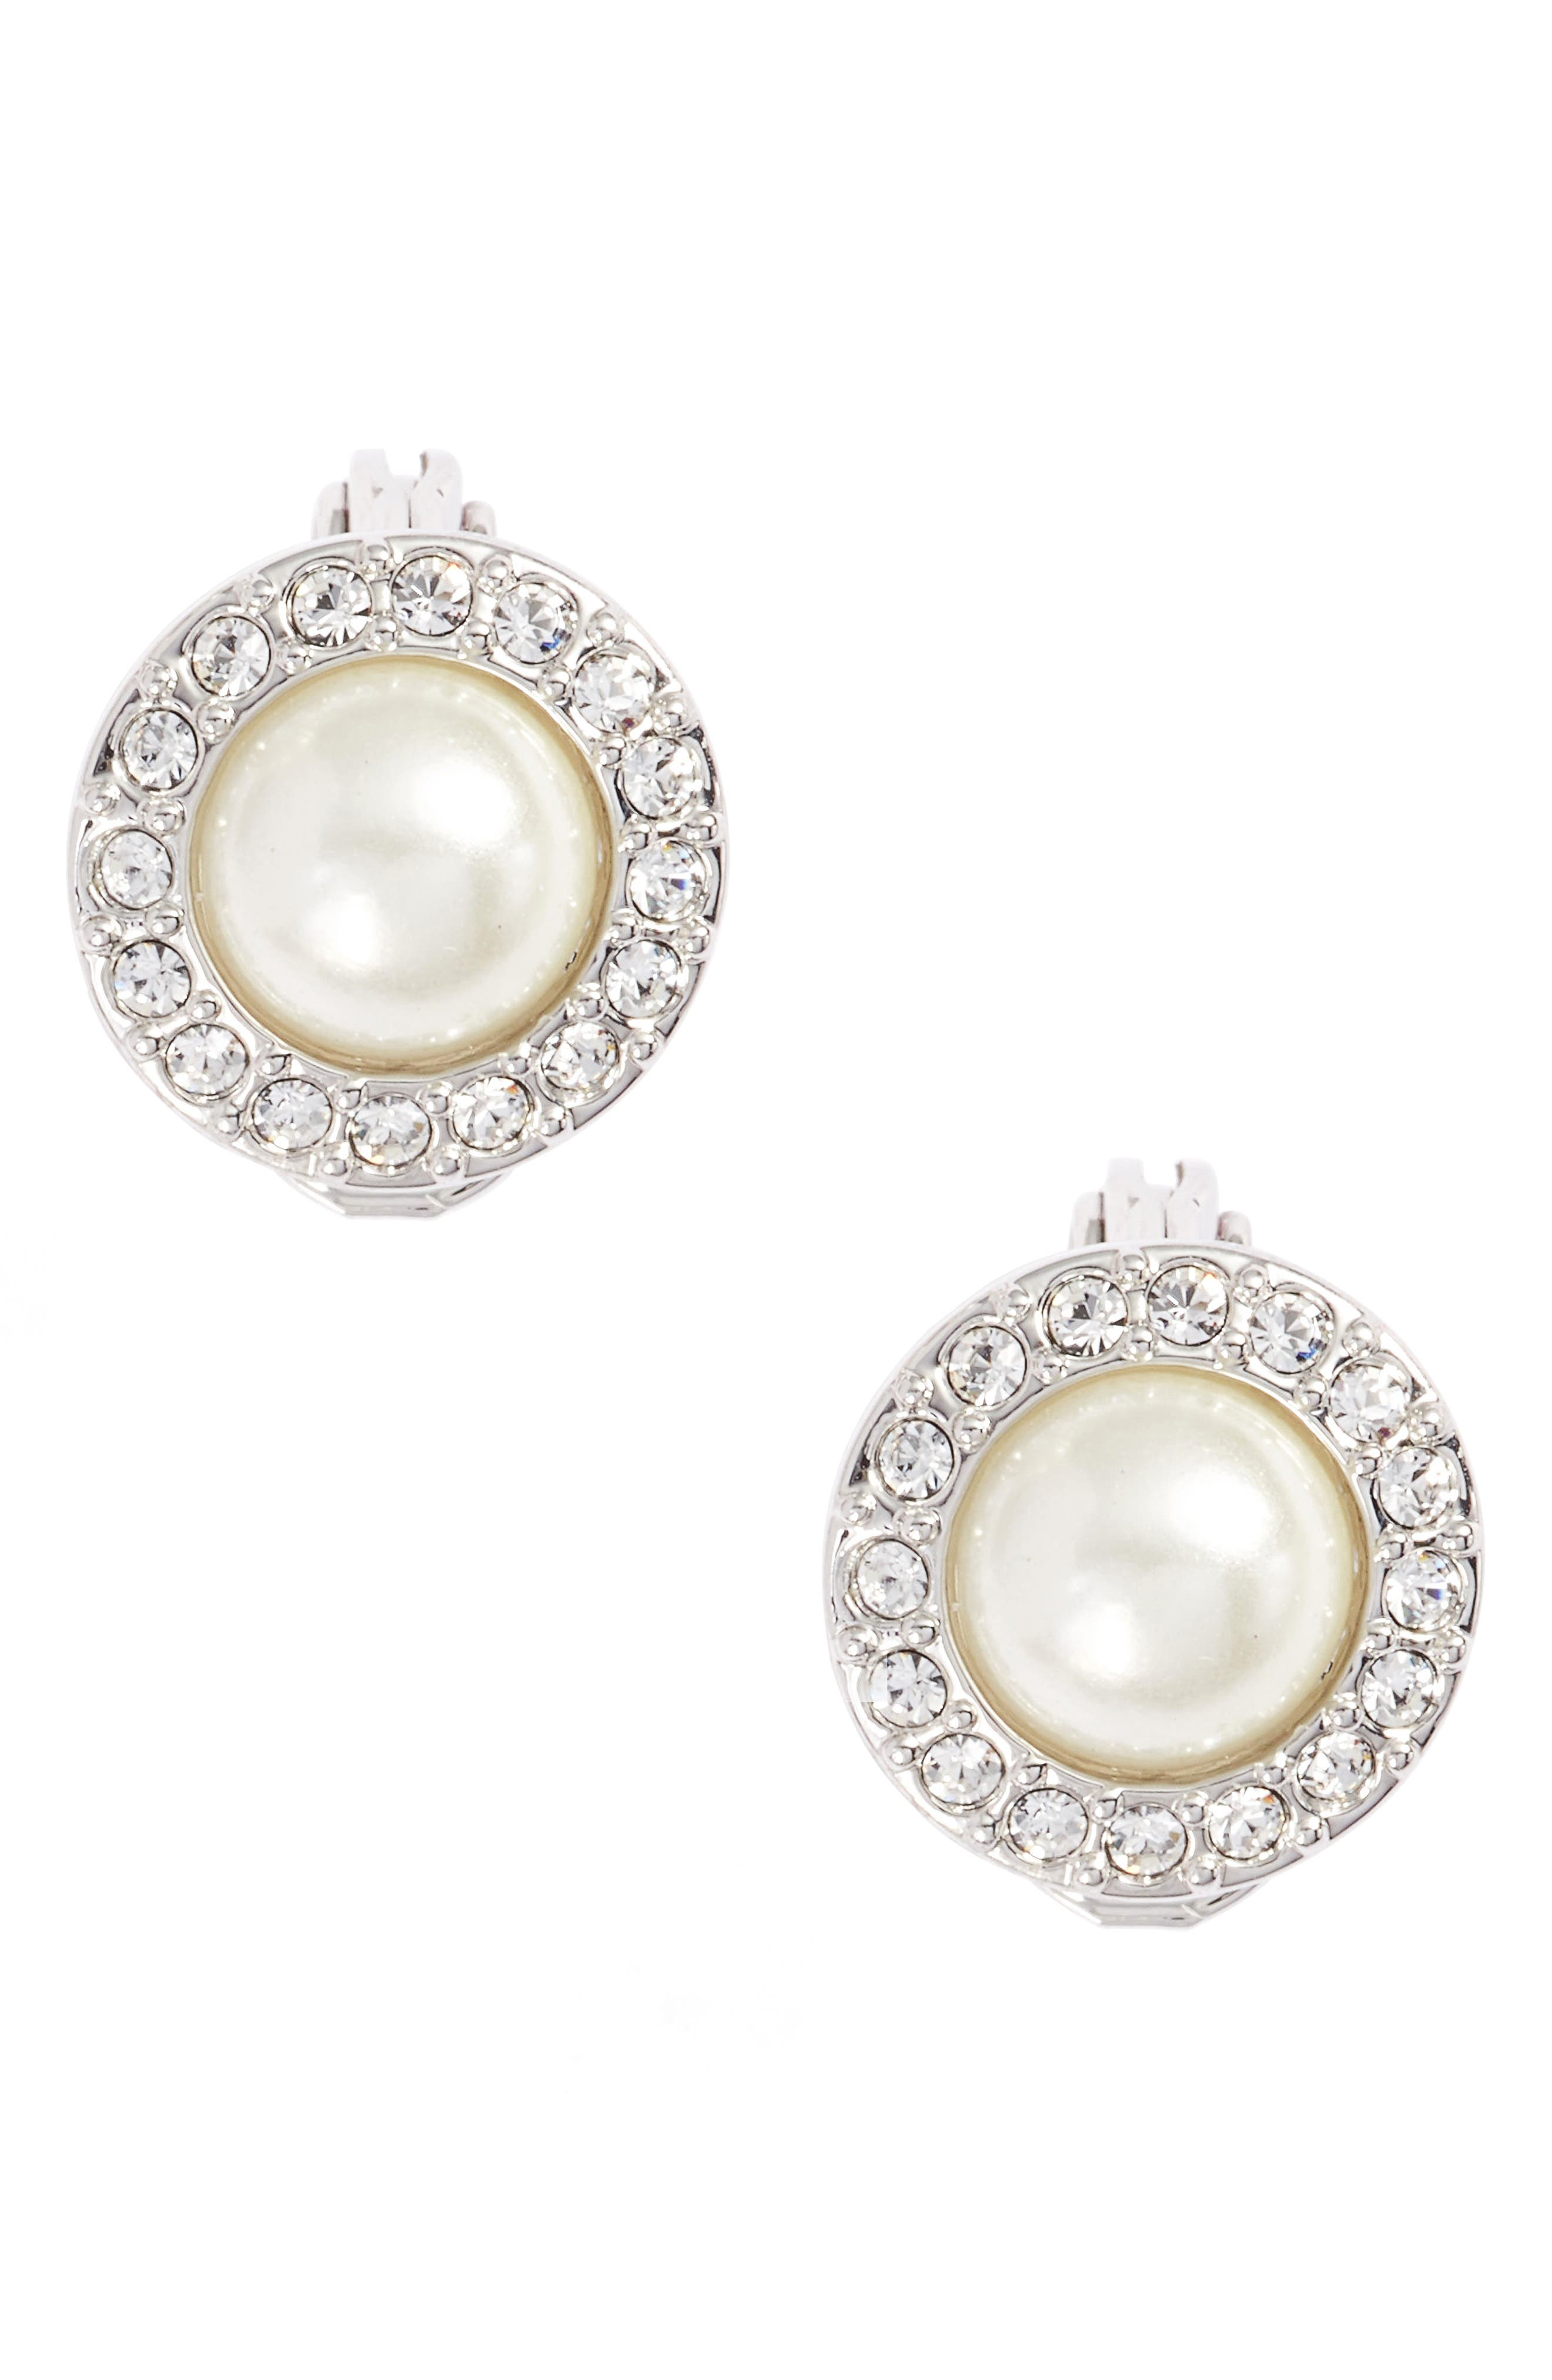 Givenchy Imitation Pearl Stud Earrings